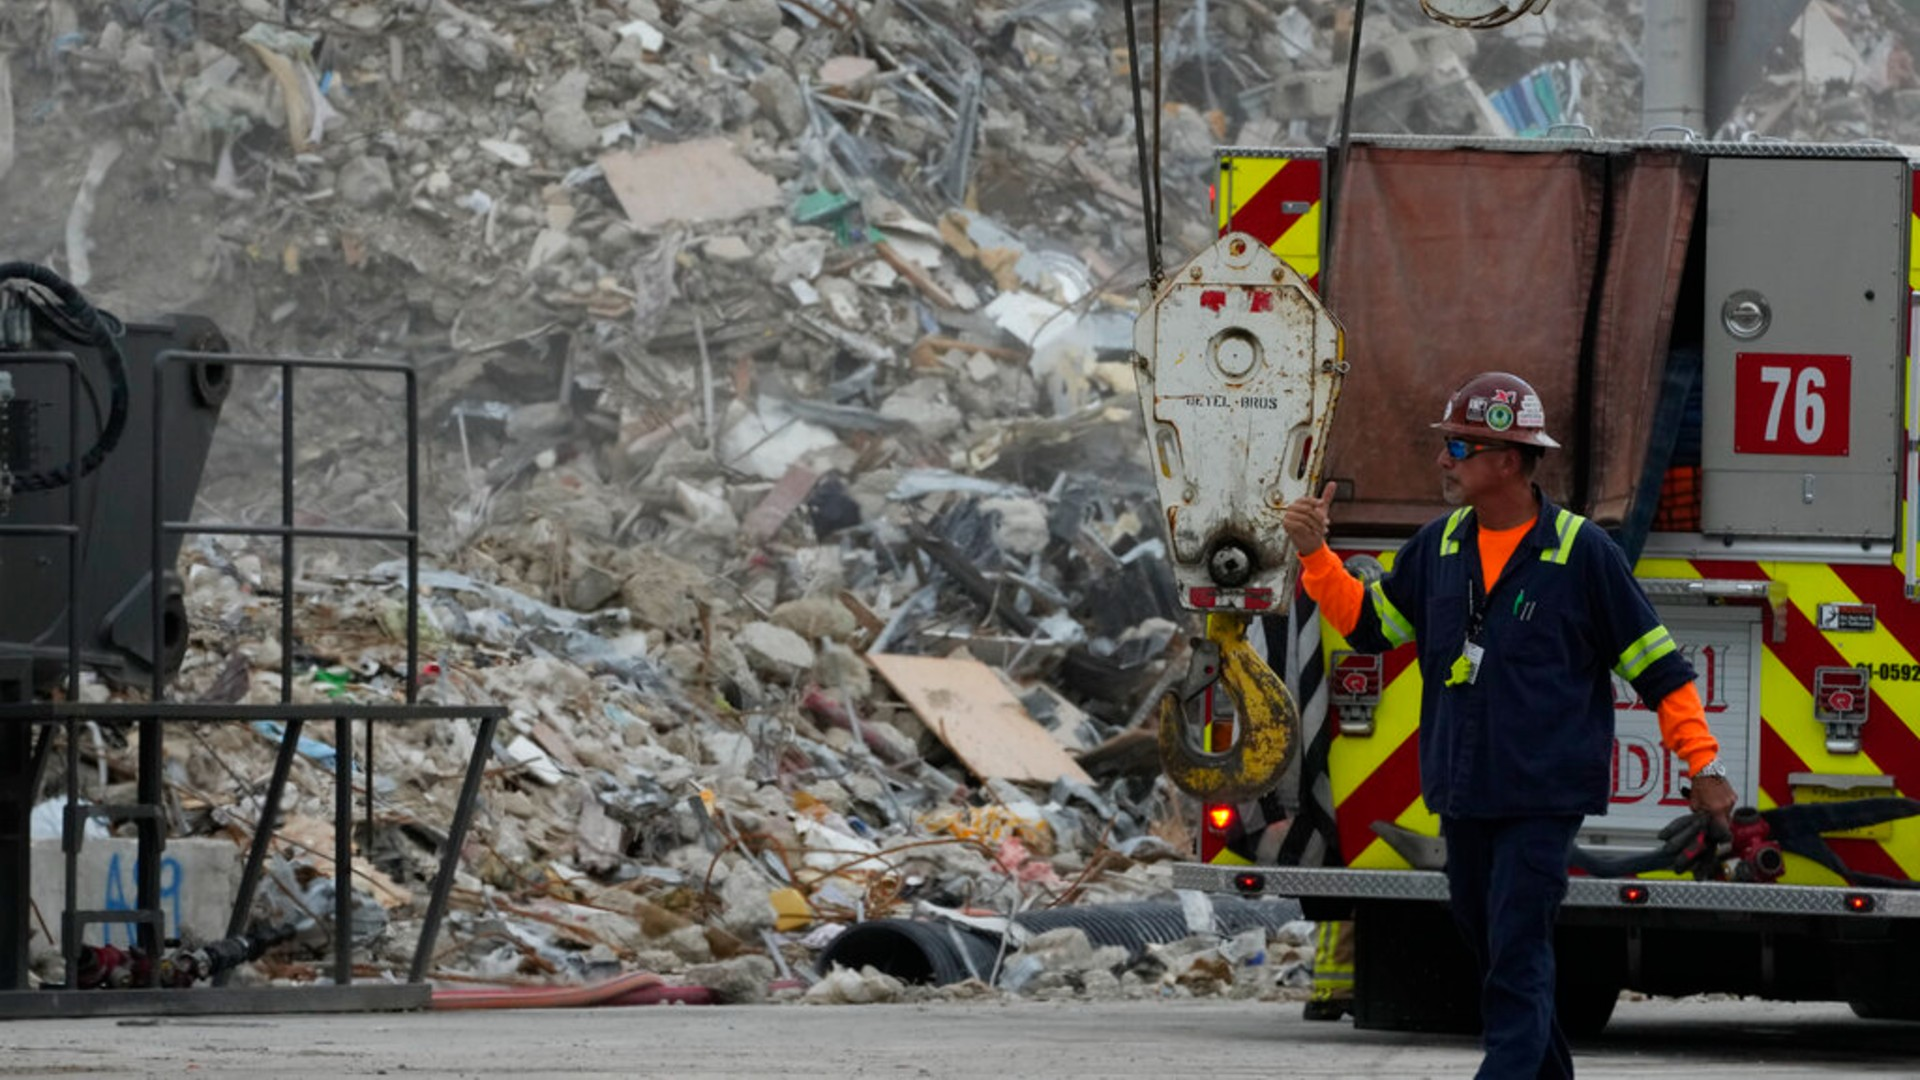 Crews work in the rubble of the demolished section of the Champlain Towers South building, as removal and recovery work continues at the site of the partially collapsed condo building, on Monday, July 12, 2021, in Surfside, Fla.(AP Photo/Rebecca Blackwell)